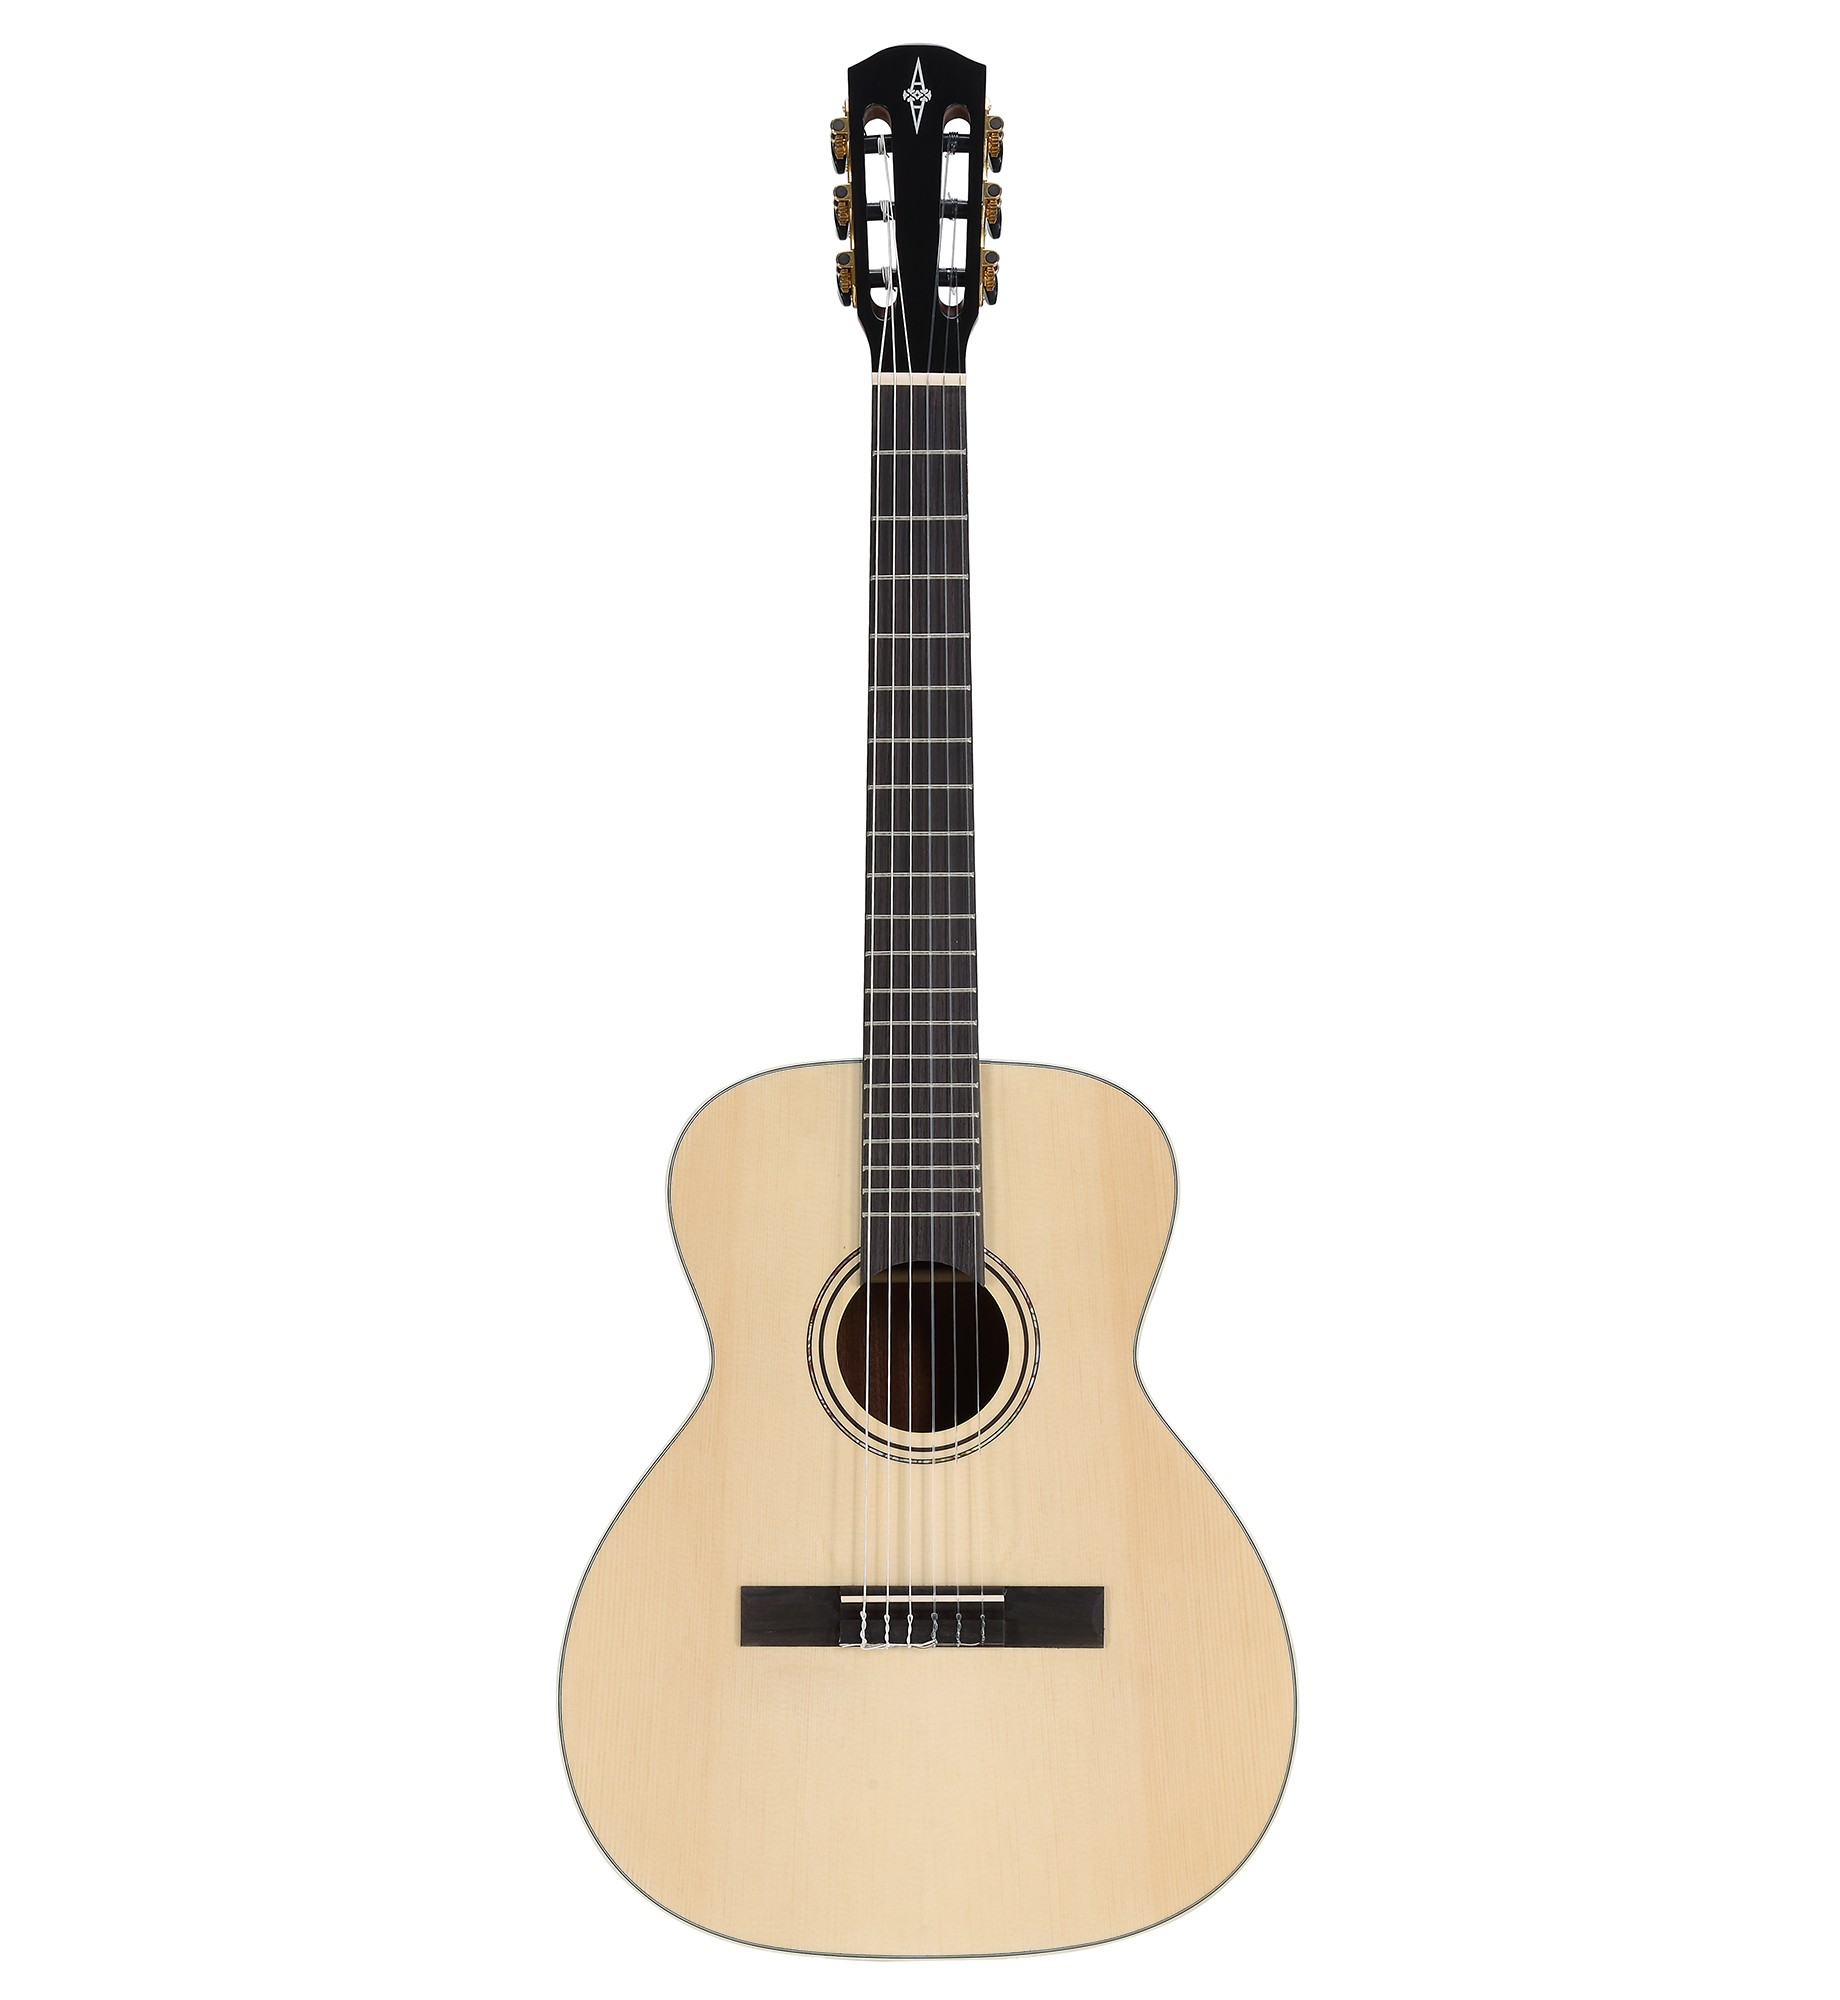 Image of Alvarez School Series Nylon Series, Short Scale Student Guitar With Gig Bag. Natural coming soon